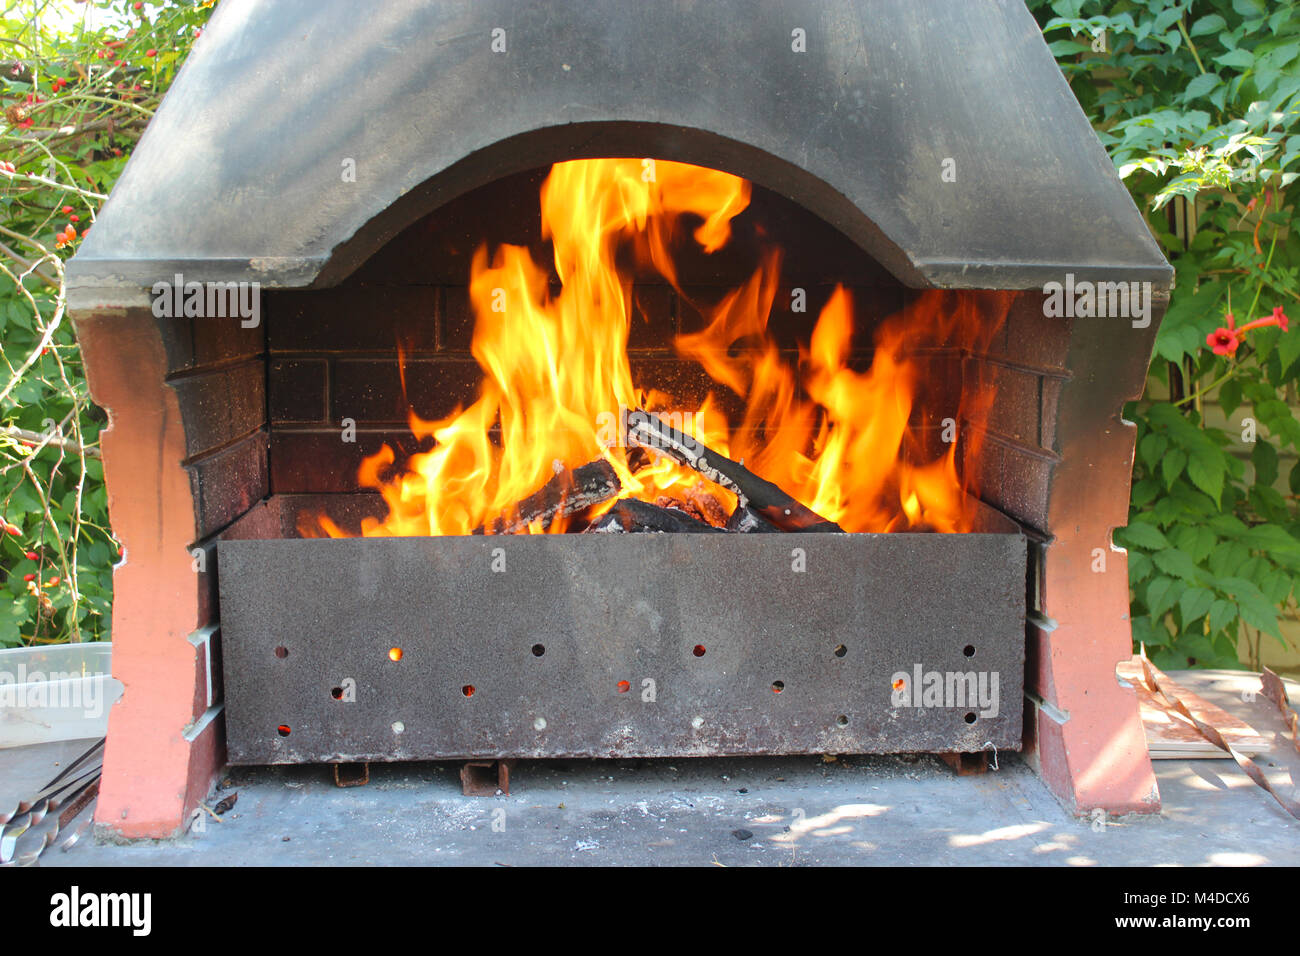 burning bright tongues of flame and brazier with shed - Stock Image